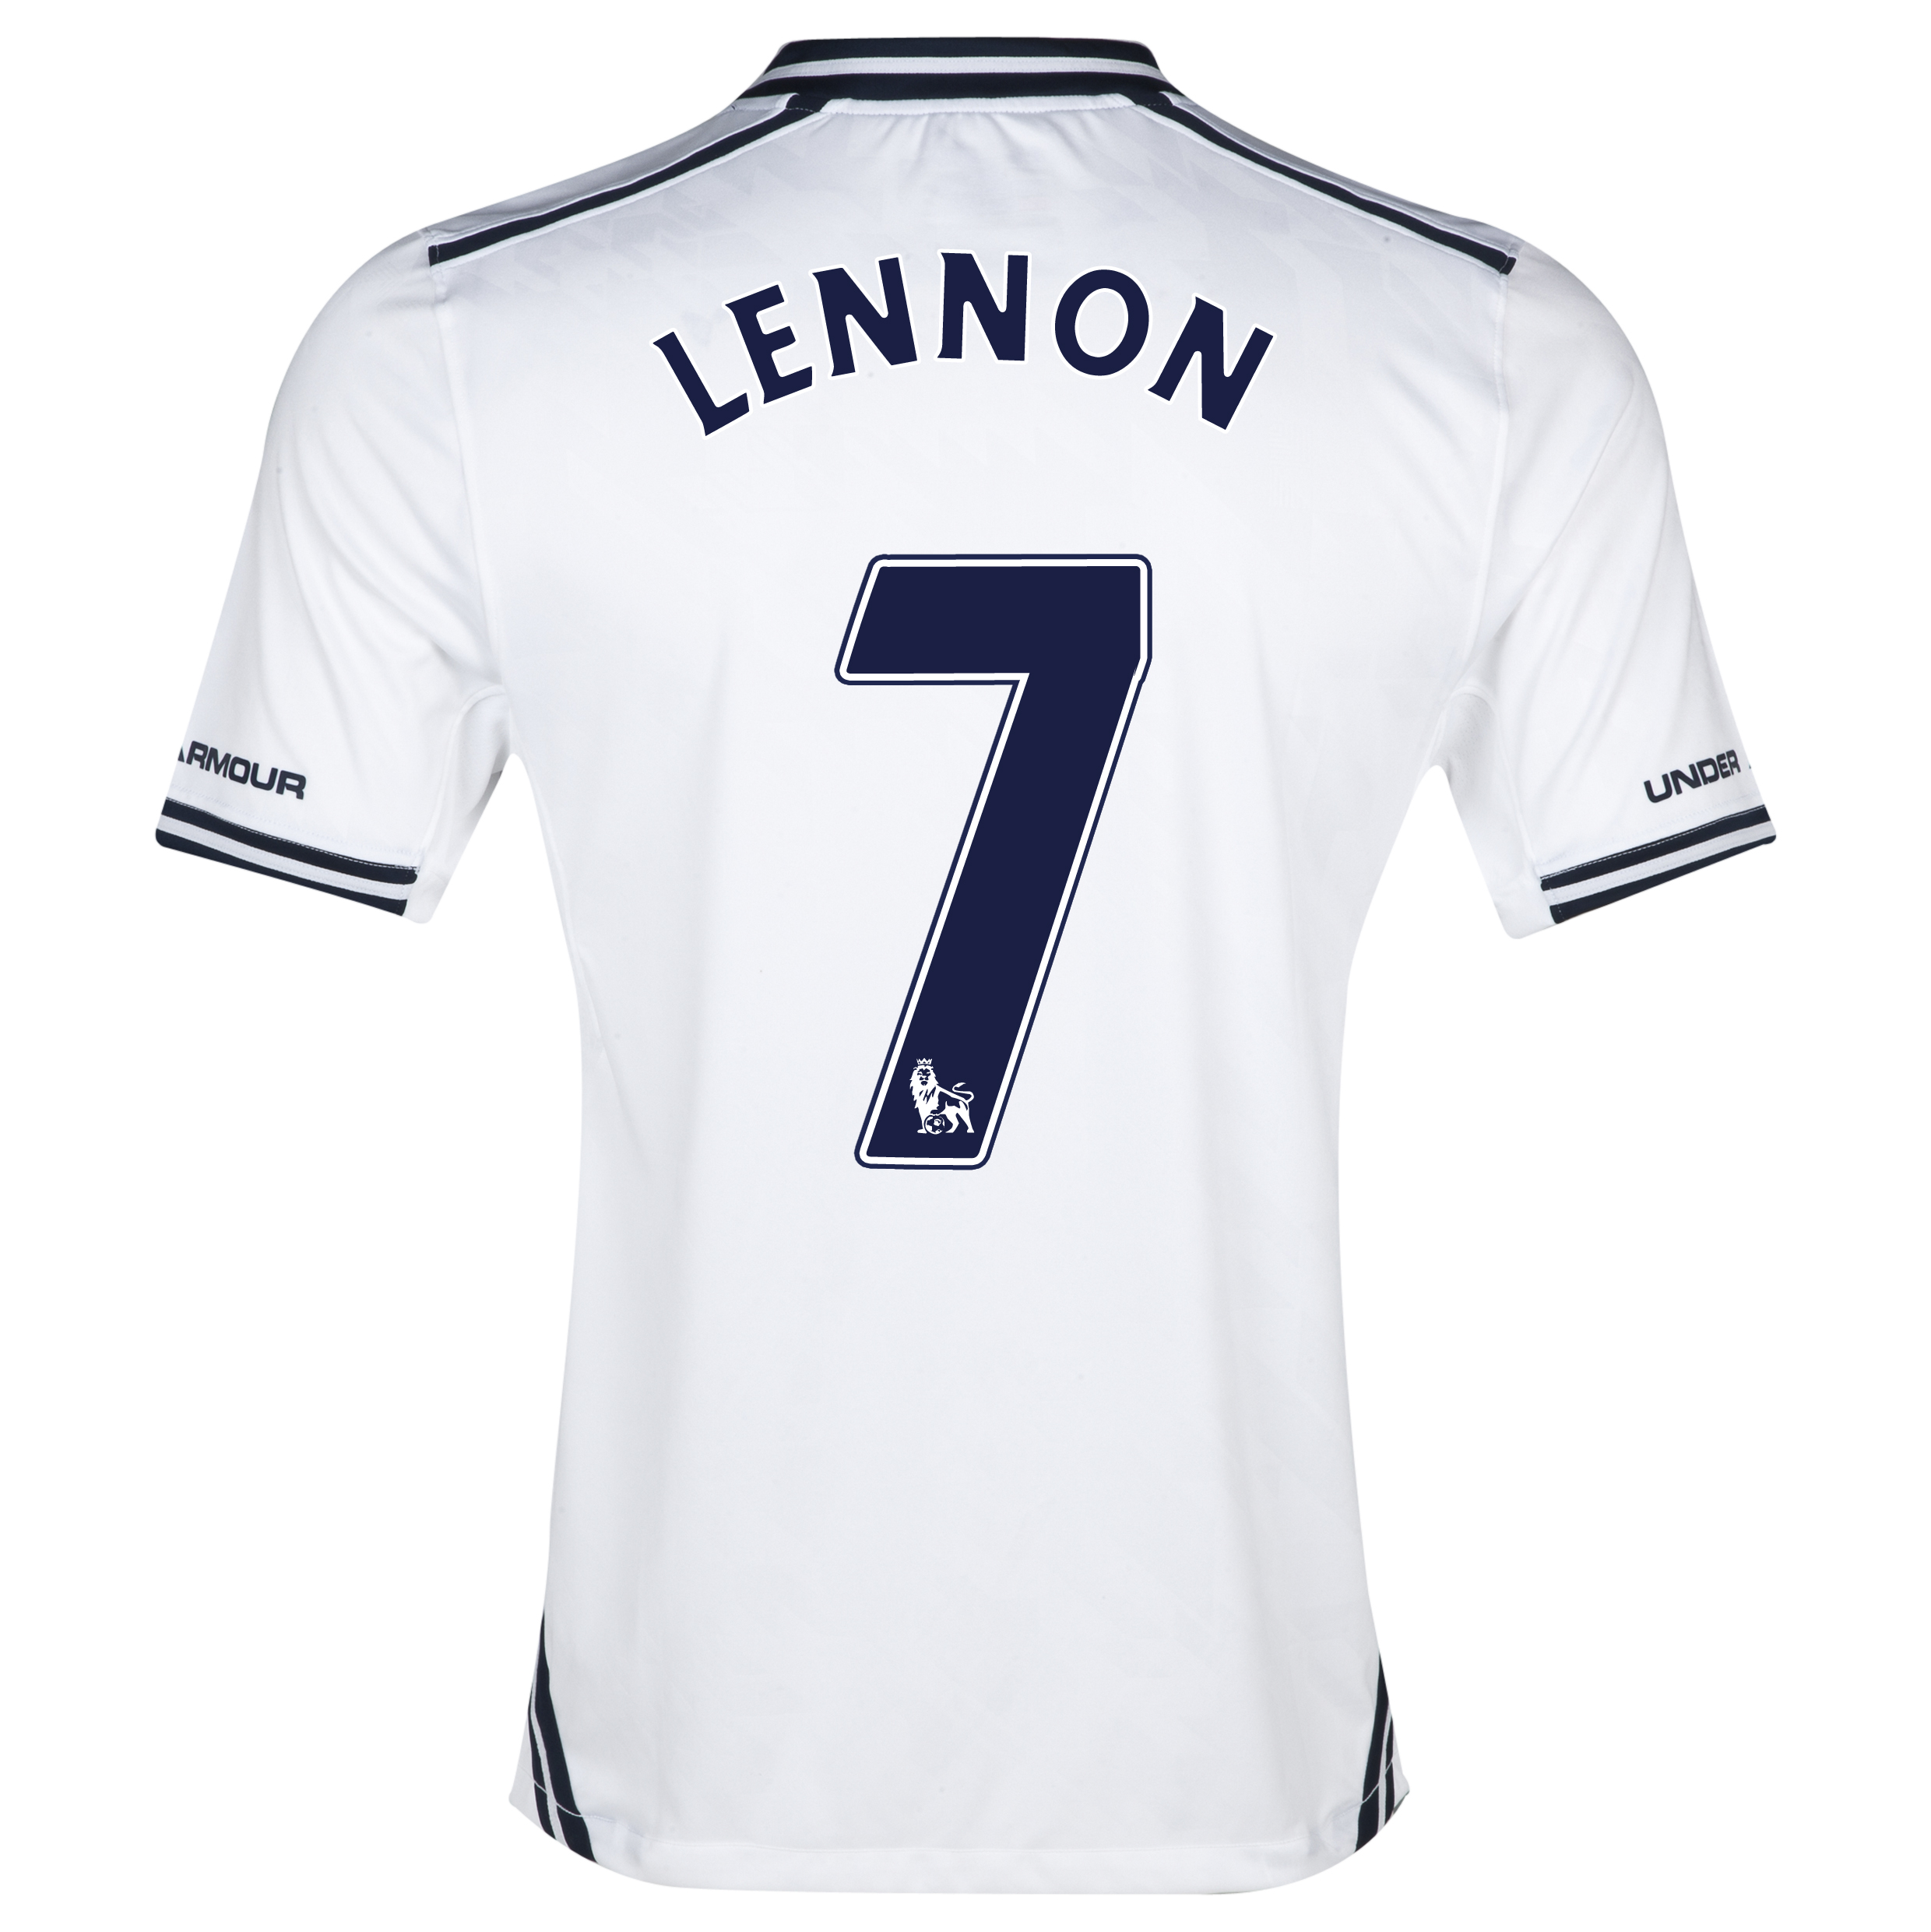 Tottenham Hotspur Home Shirt 2013/14 with Lennon 7 printing